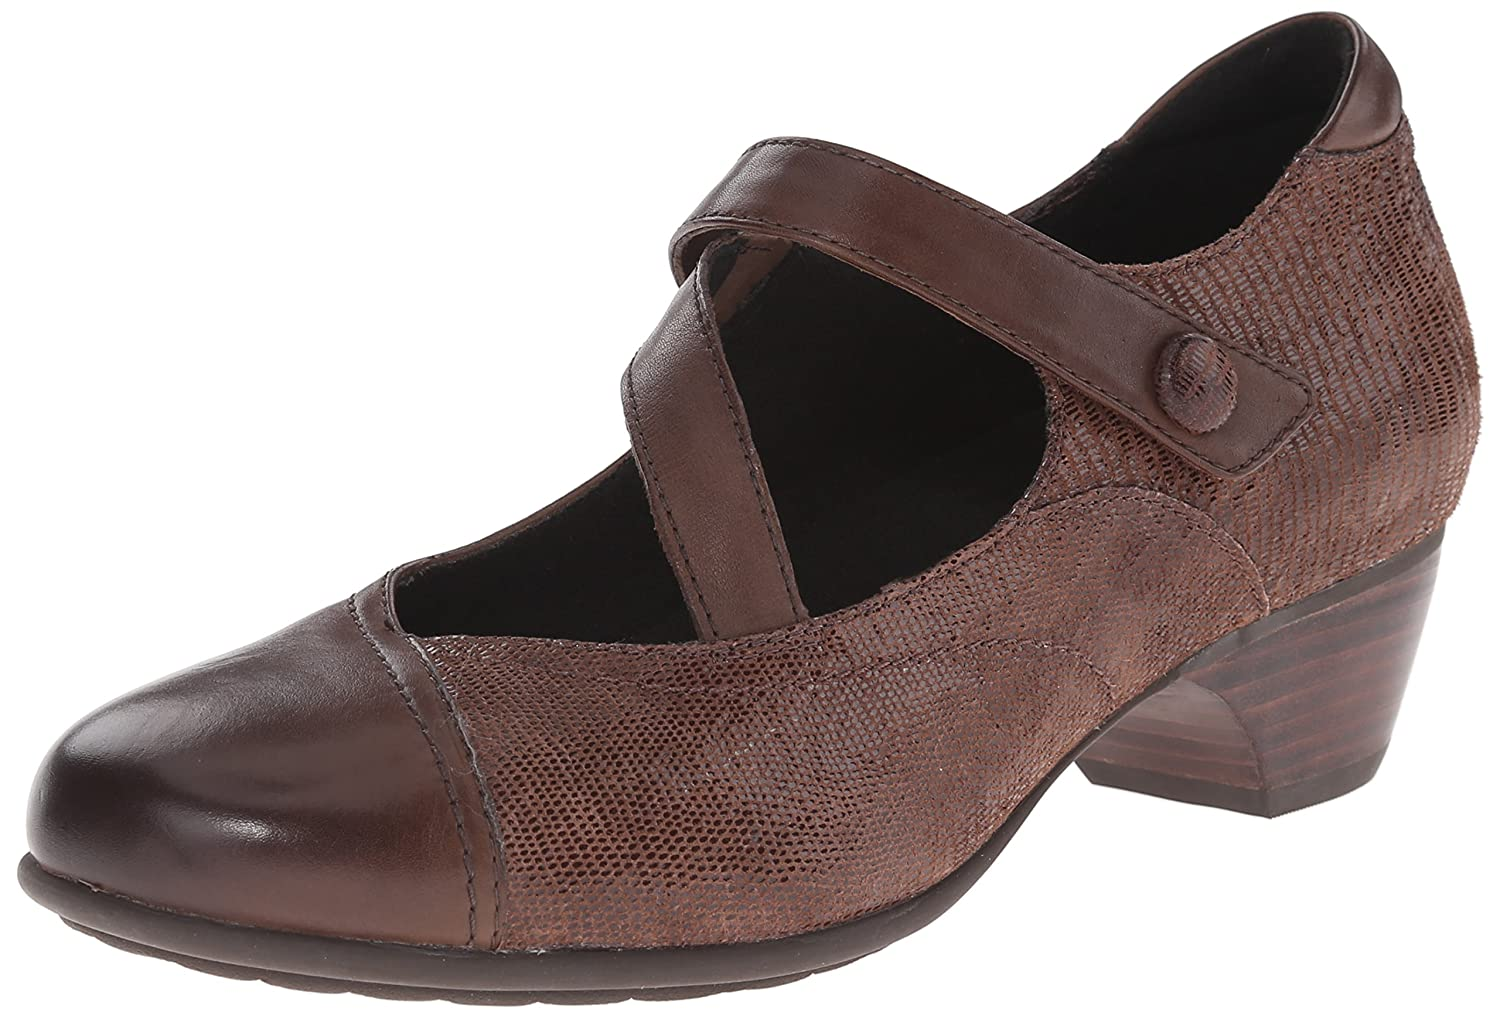 Aravon Women's Portia - AR Dress Pump B00UU3TLYS 11 D US|Brown/Multi